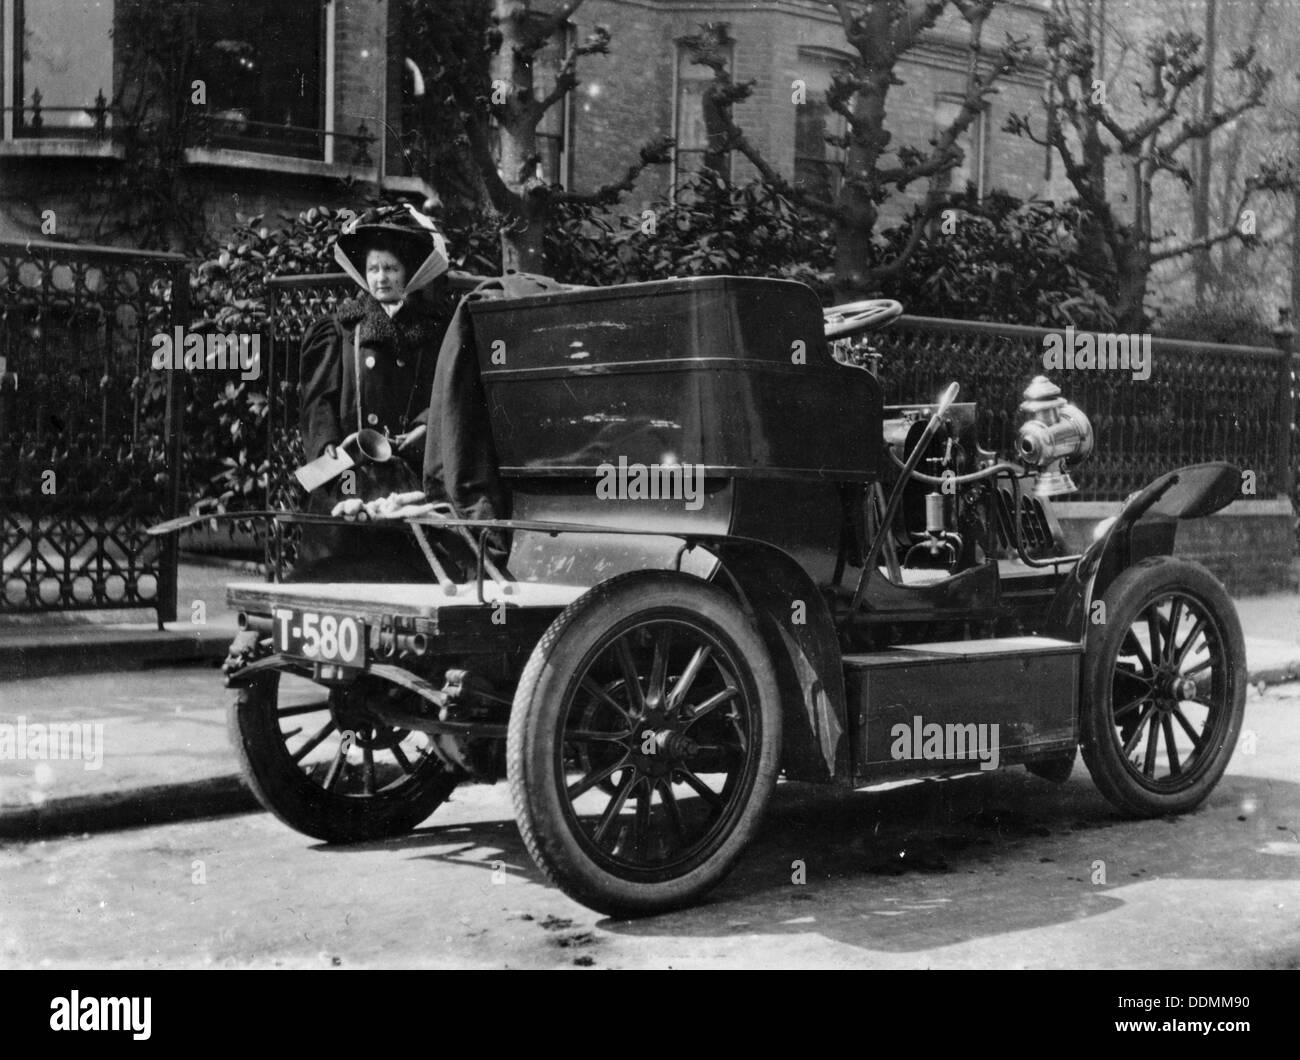 A 1904 De Dion car parked in a street, (c1904?). - Stock Image